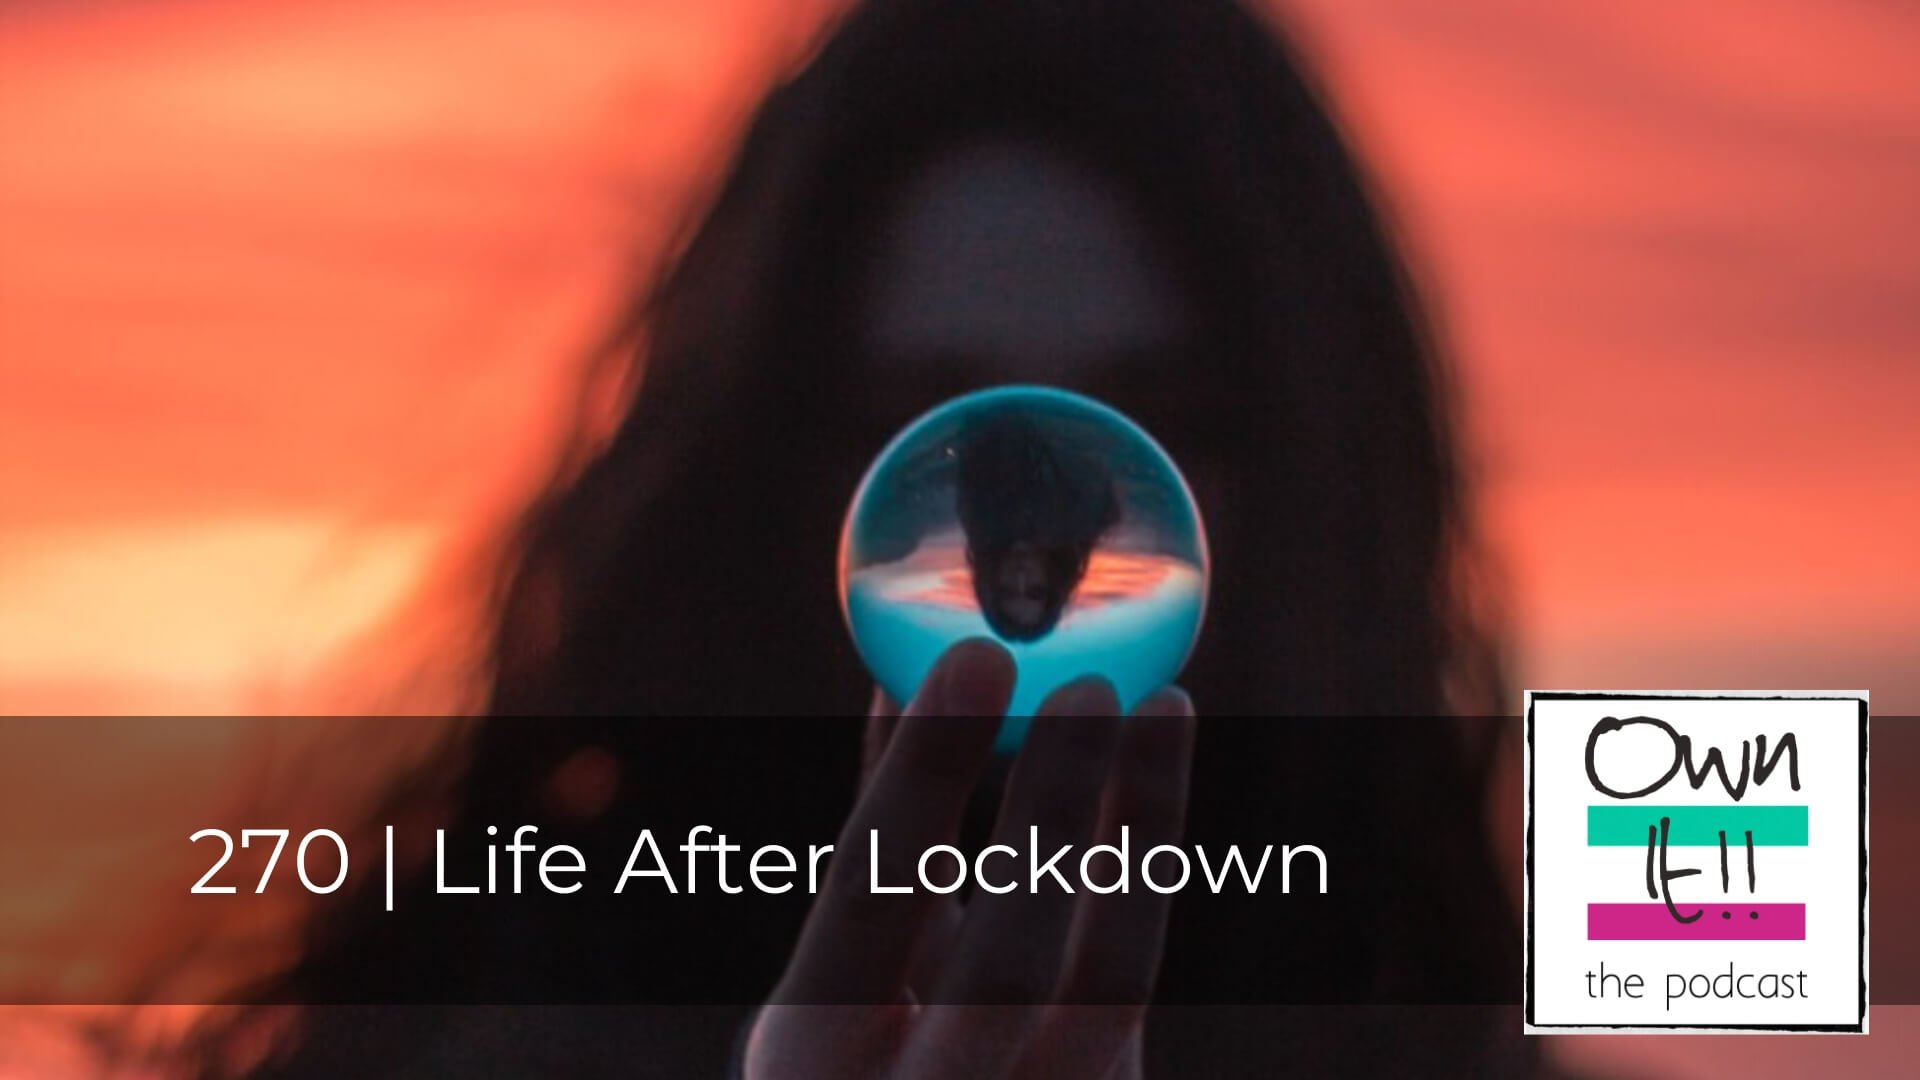 Own It! 270 | Life After Lockdown